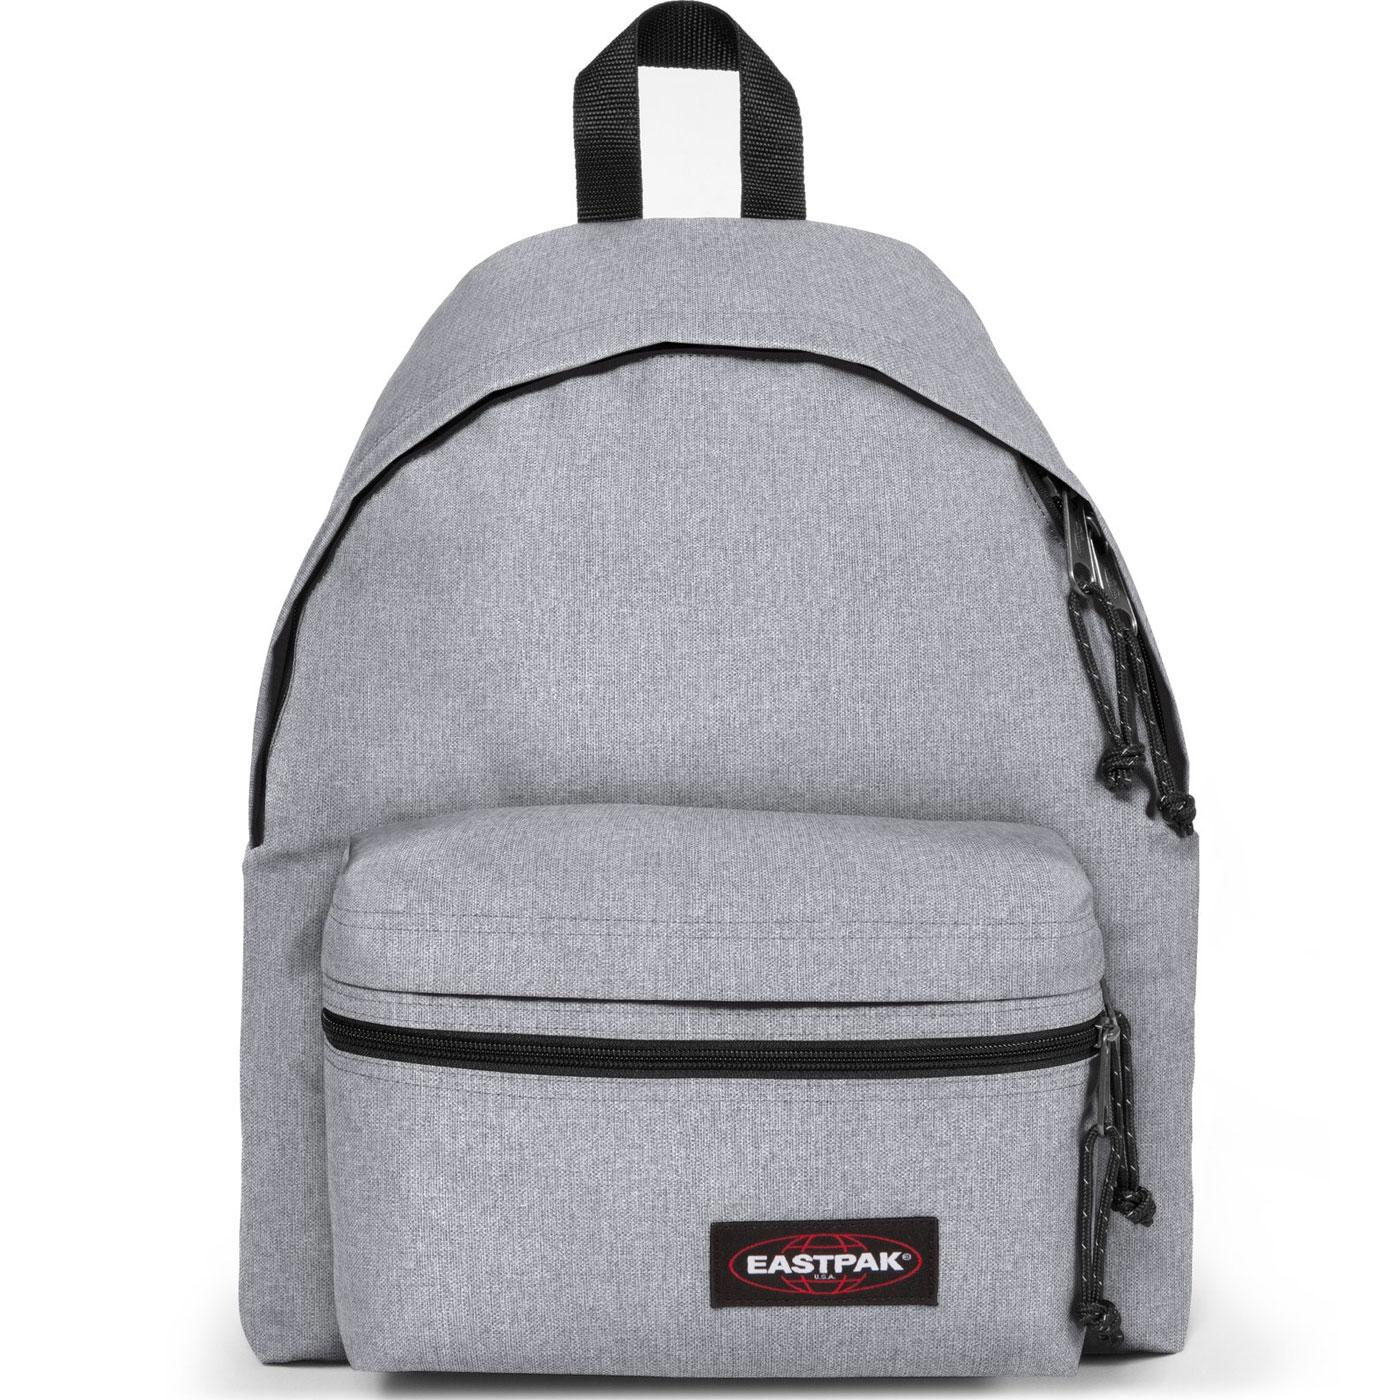 Padded Zippl'r EASTPAK Laptop Backpack SUNDAY GREY